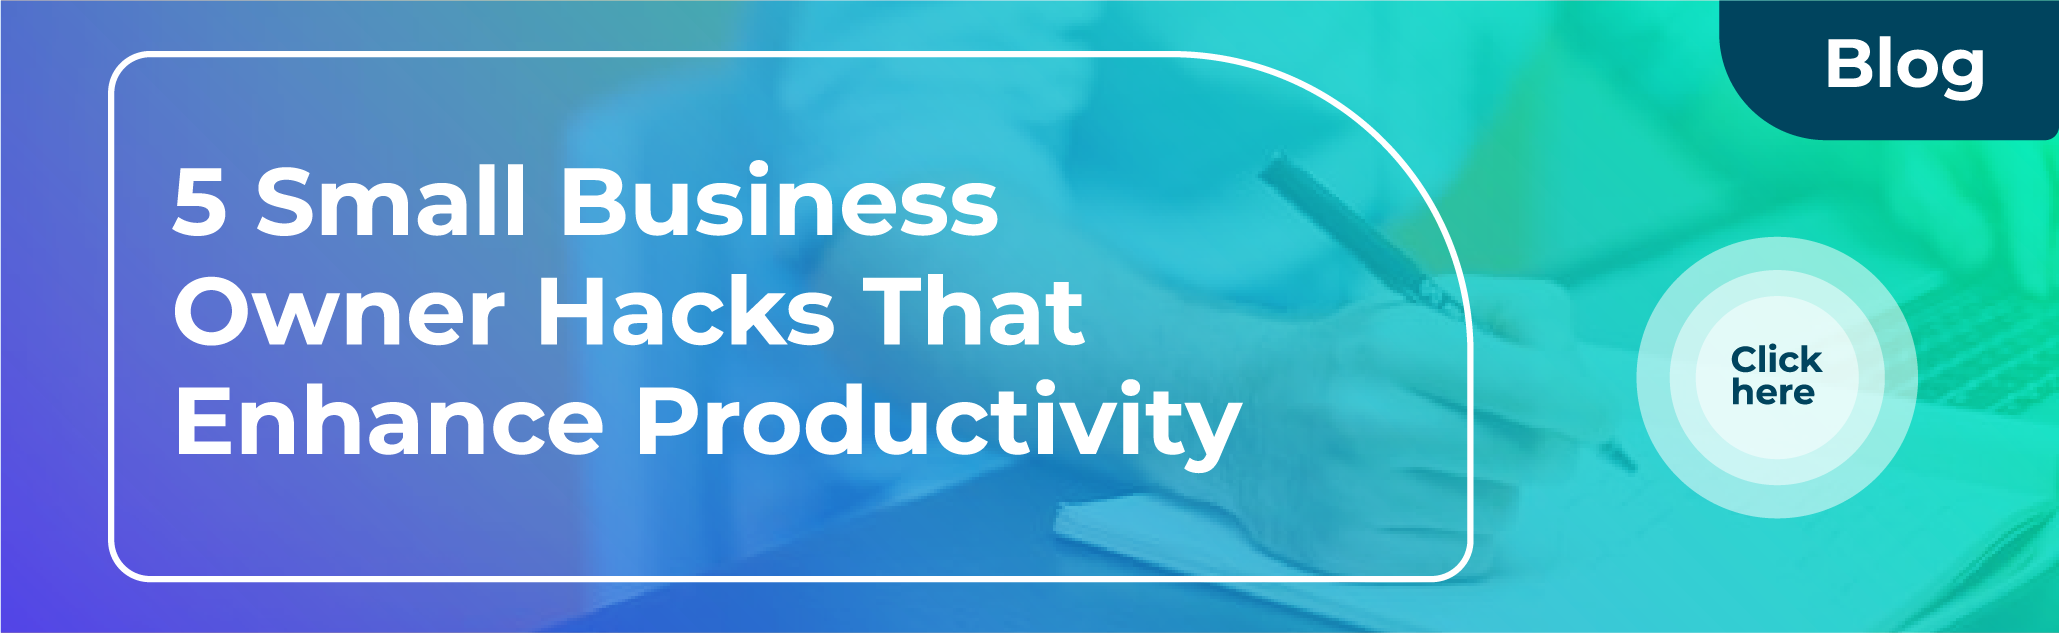 5 Small Beusiness Owner Hacks that Enhance Productivity | Botkeeper